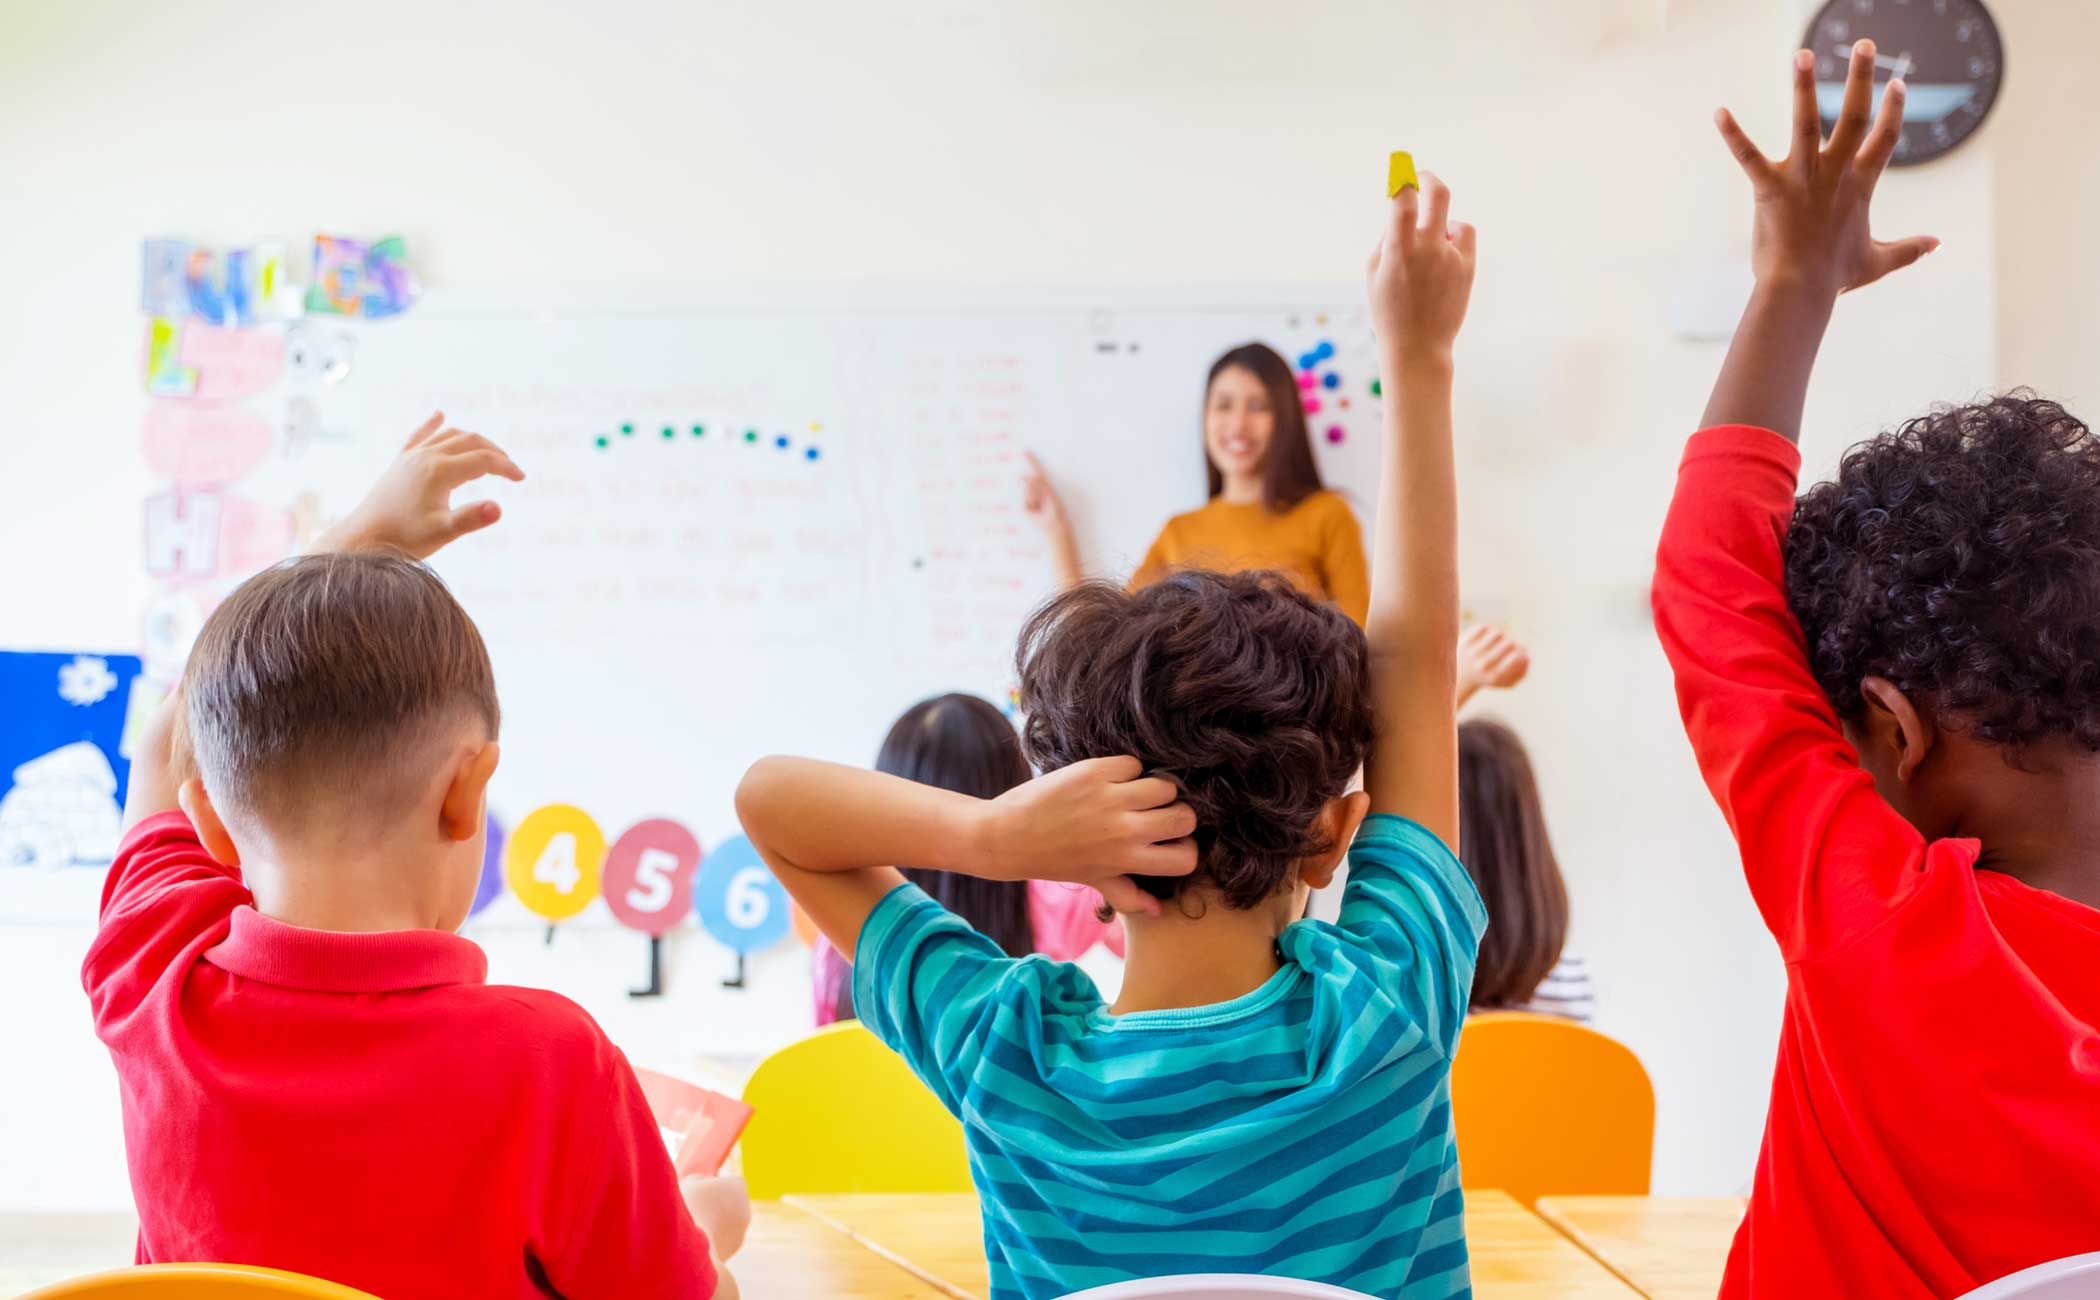 Students in a classroom raising their hands.